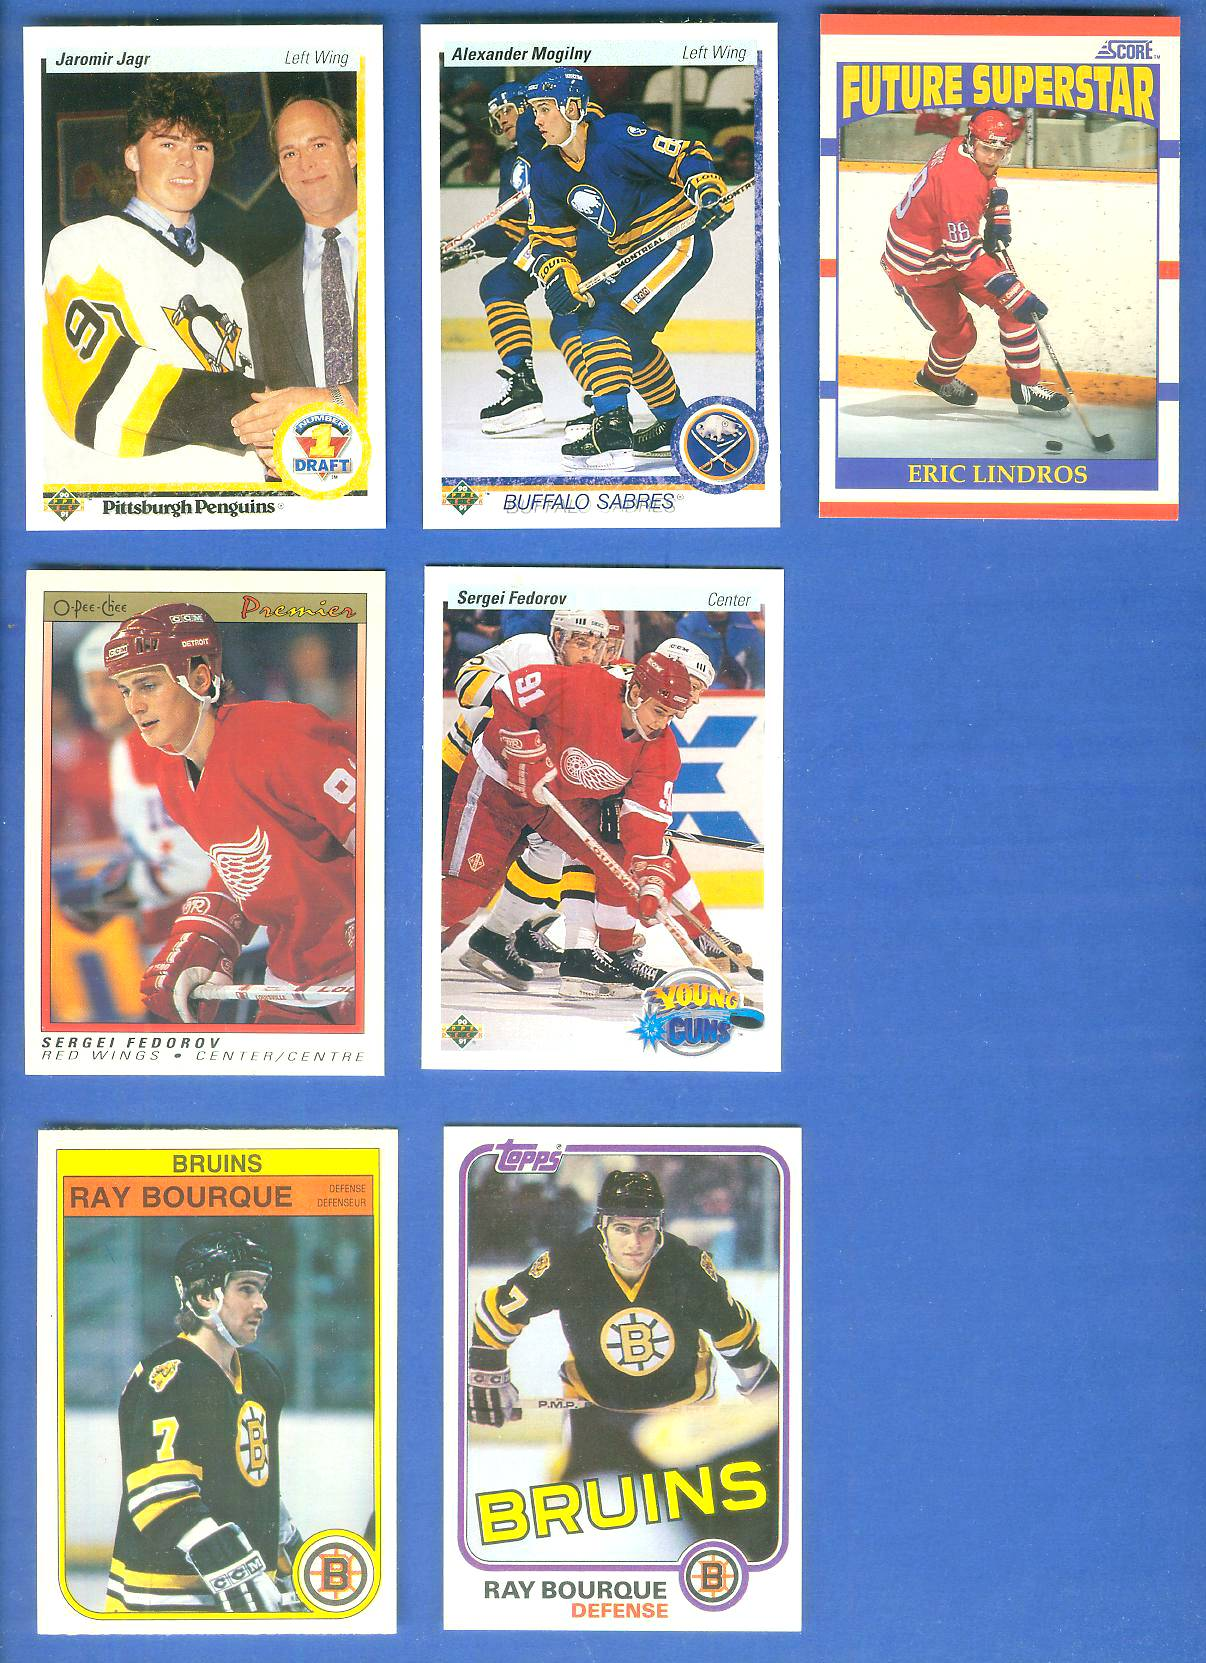 1990-91 Upper Deck #356 Jaromir Jagr ROOKIE (Penguins) Hockey cards value